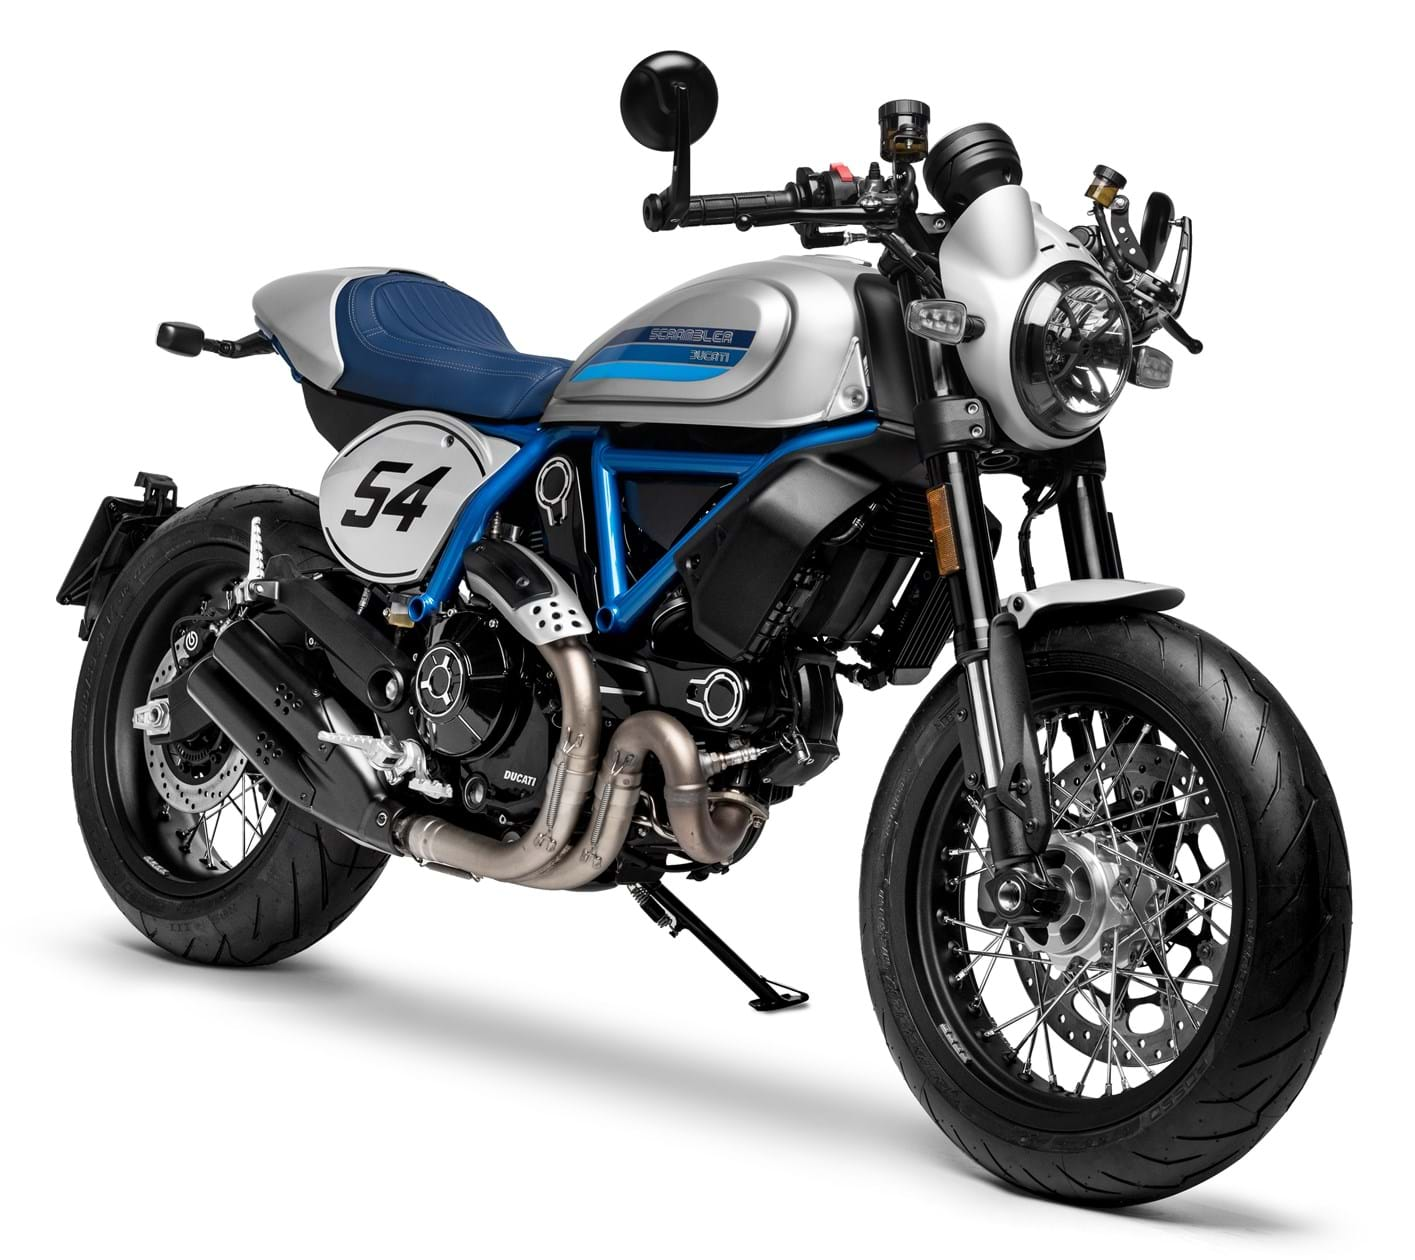 For Sale Ducati Scrambler Cafe Racer The Bike Market